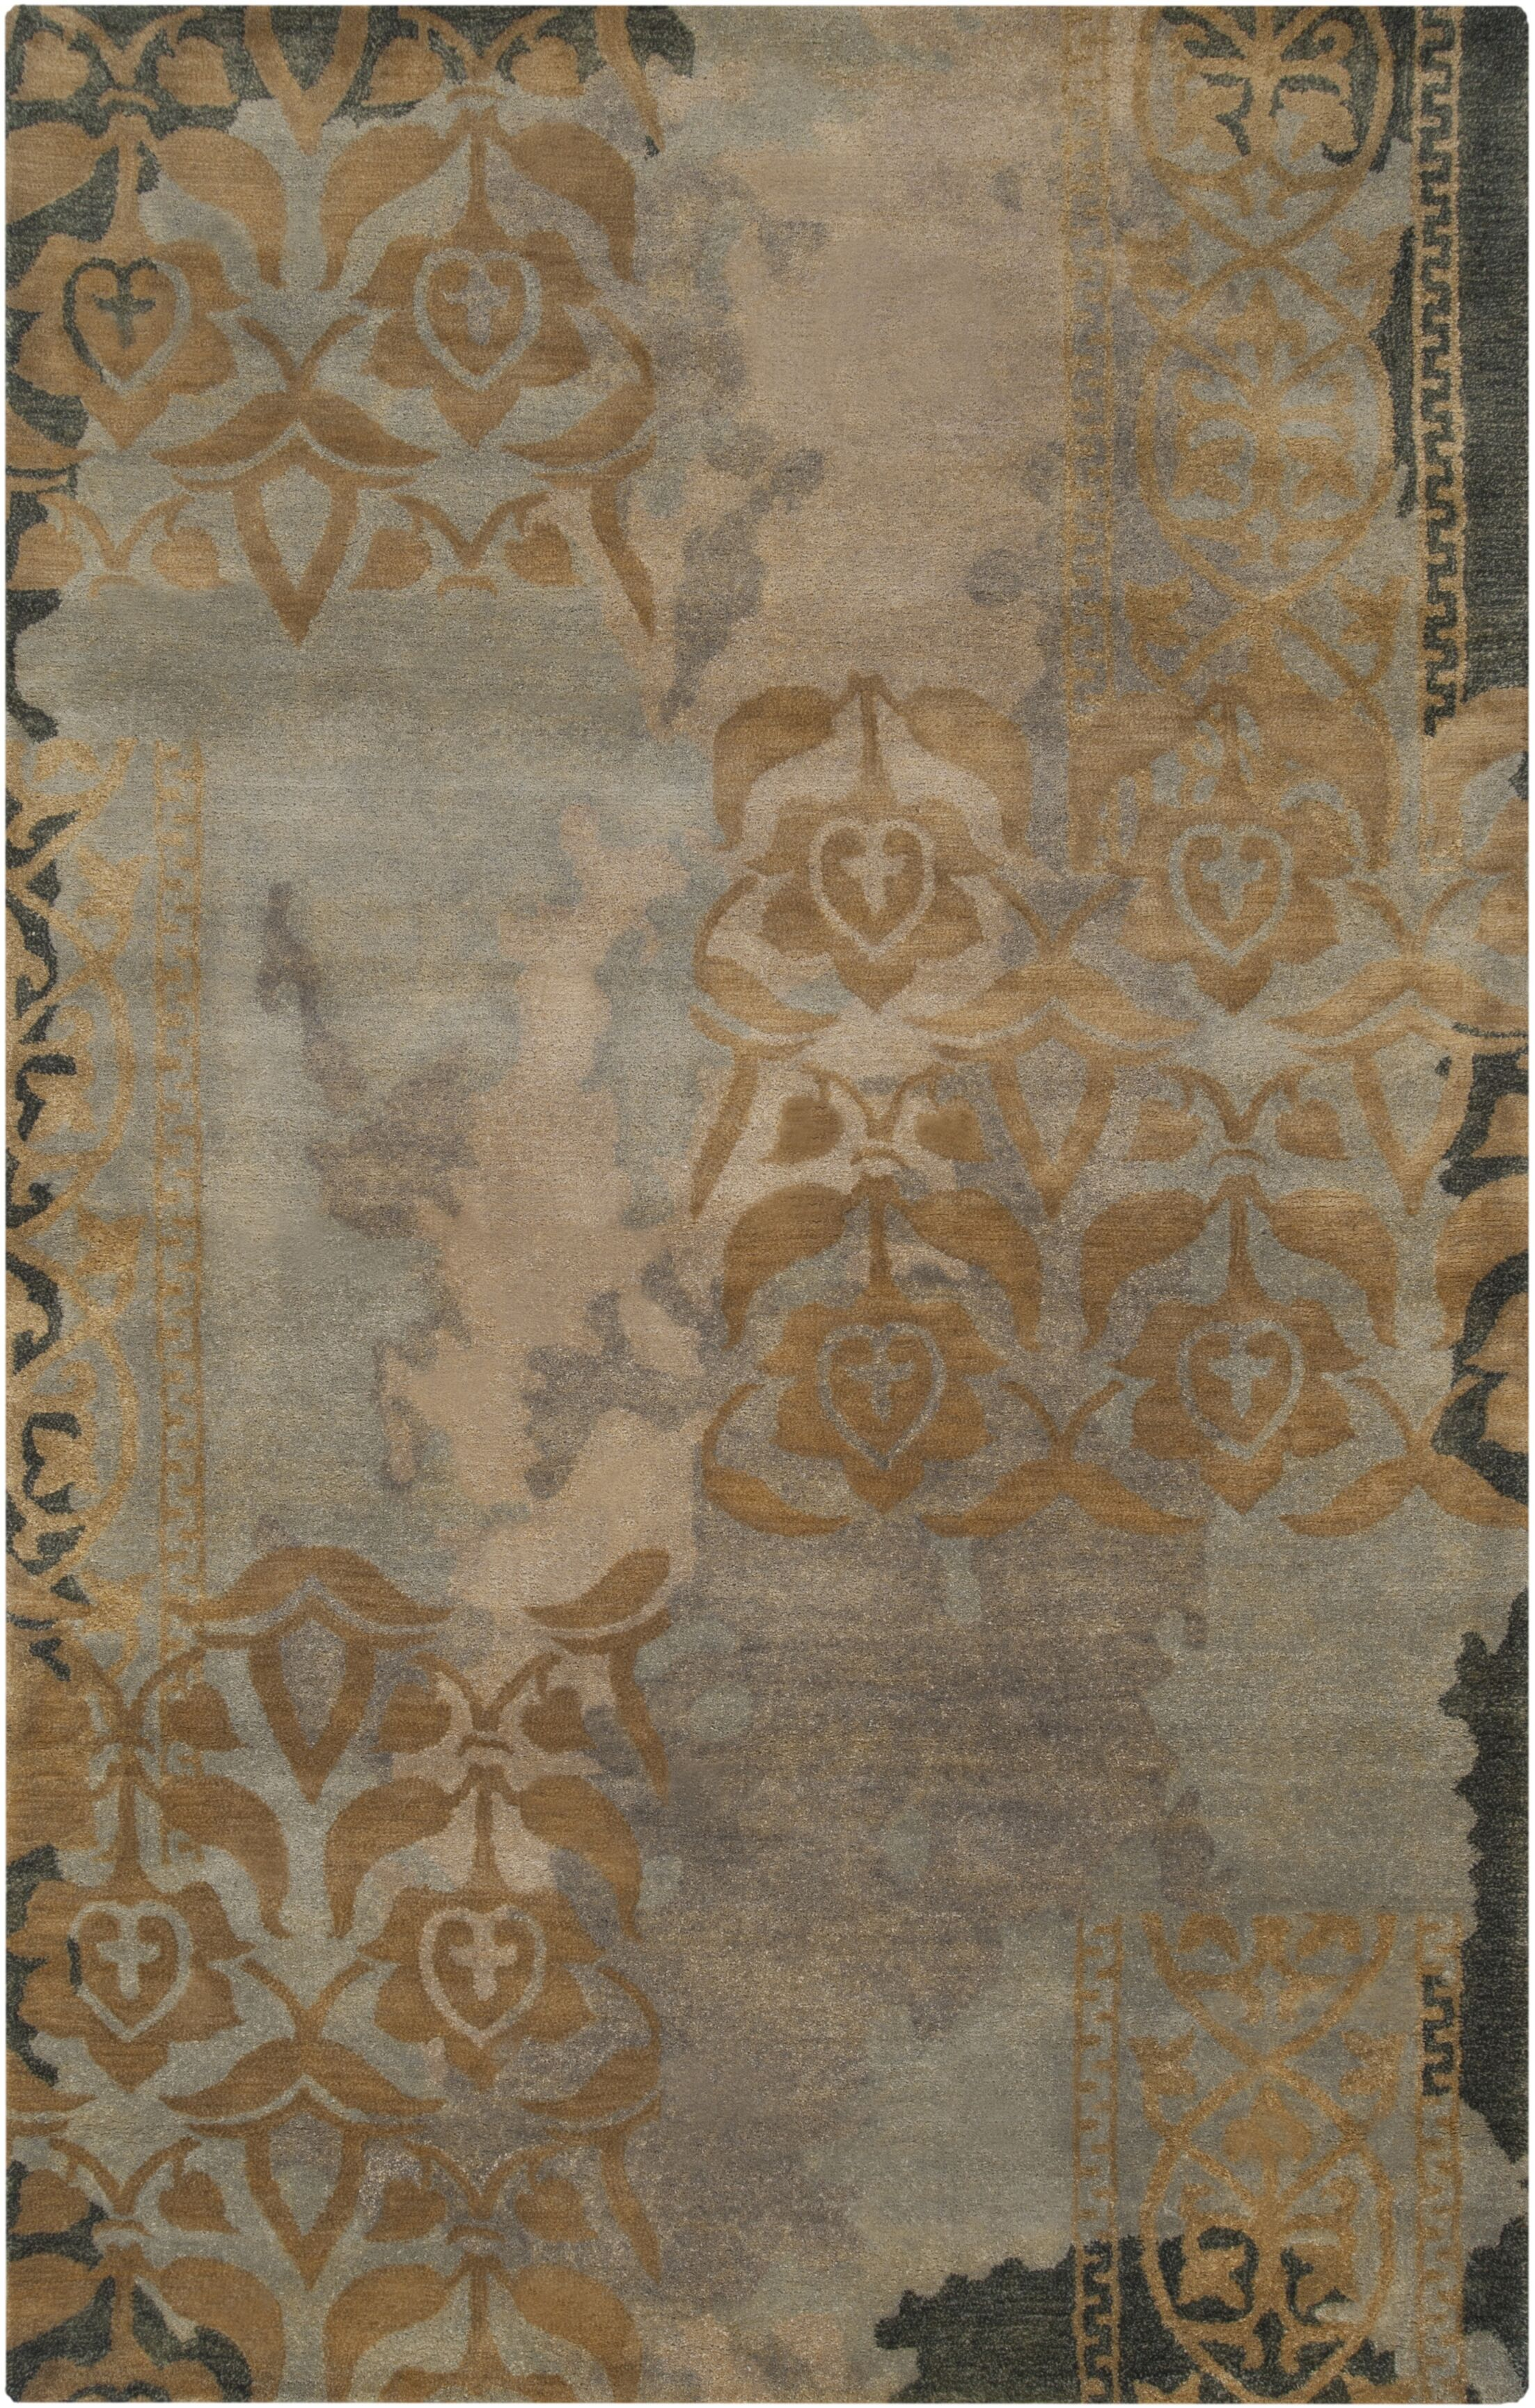 Brees Hand-Tufted Medium Gray/Camel Area Rug Rug Size: Rectangle 2' x 3'